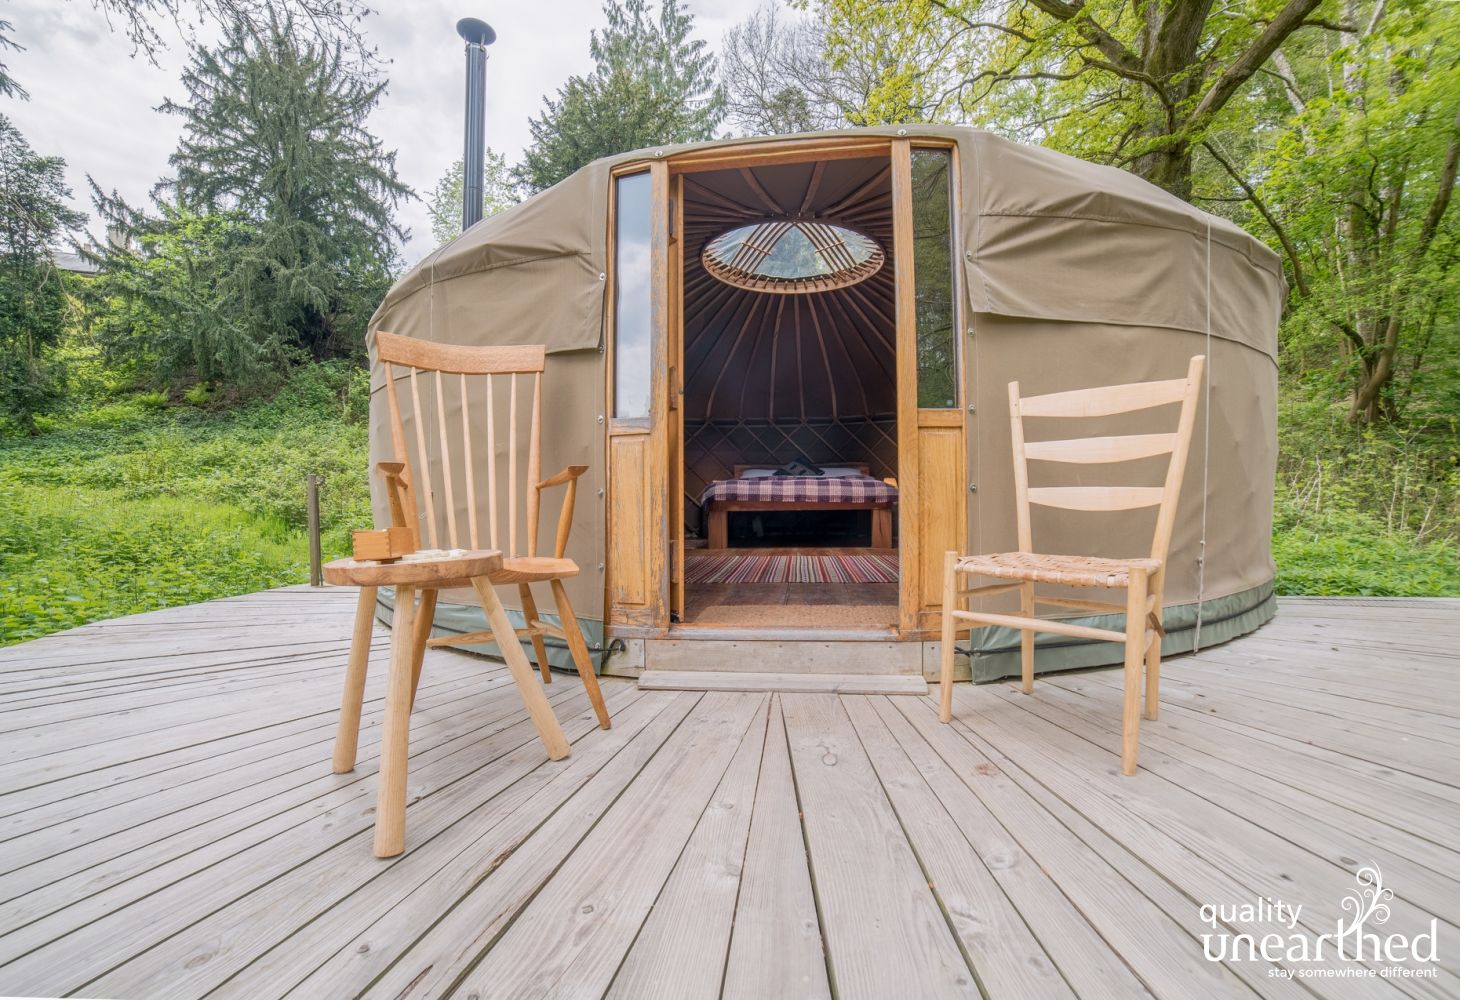 An image of the off-grid family sized yurt, sat on a spacious wooden terrace